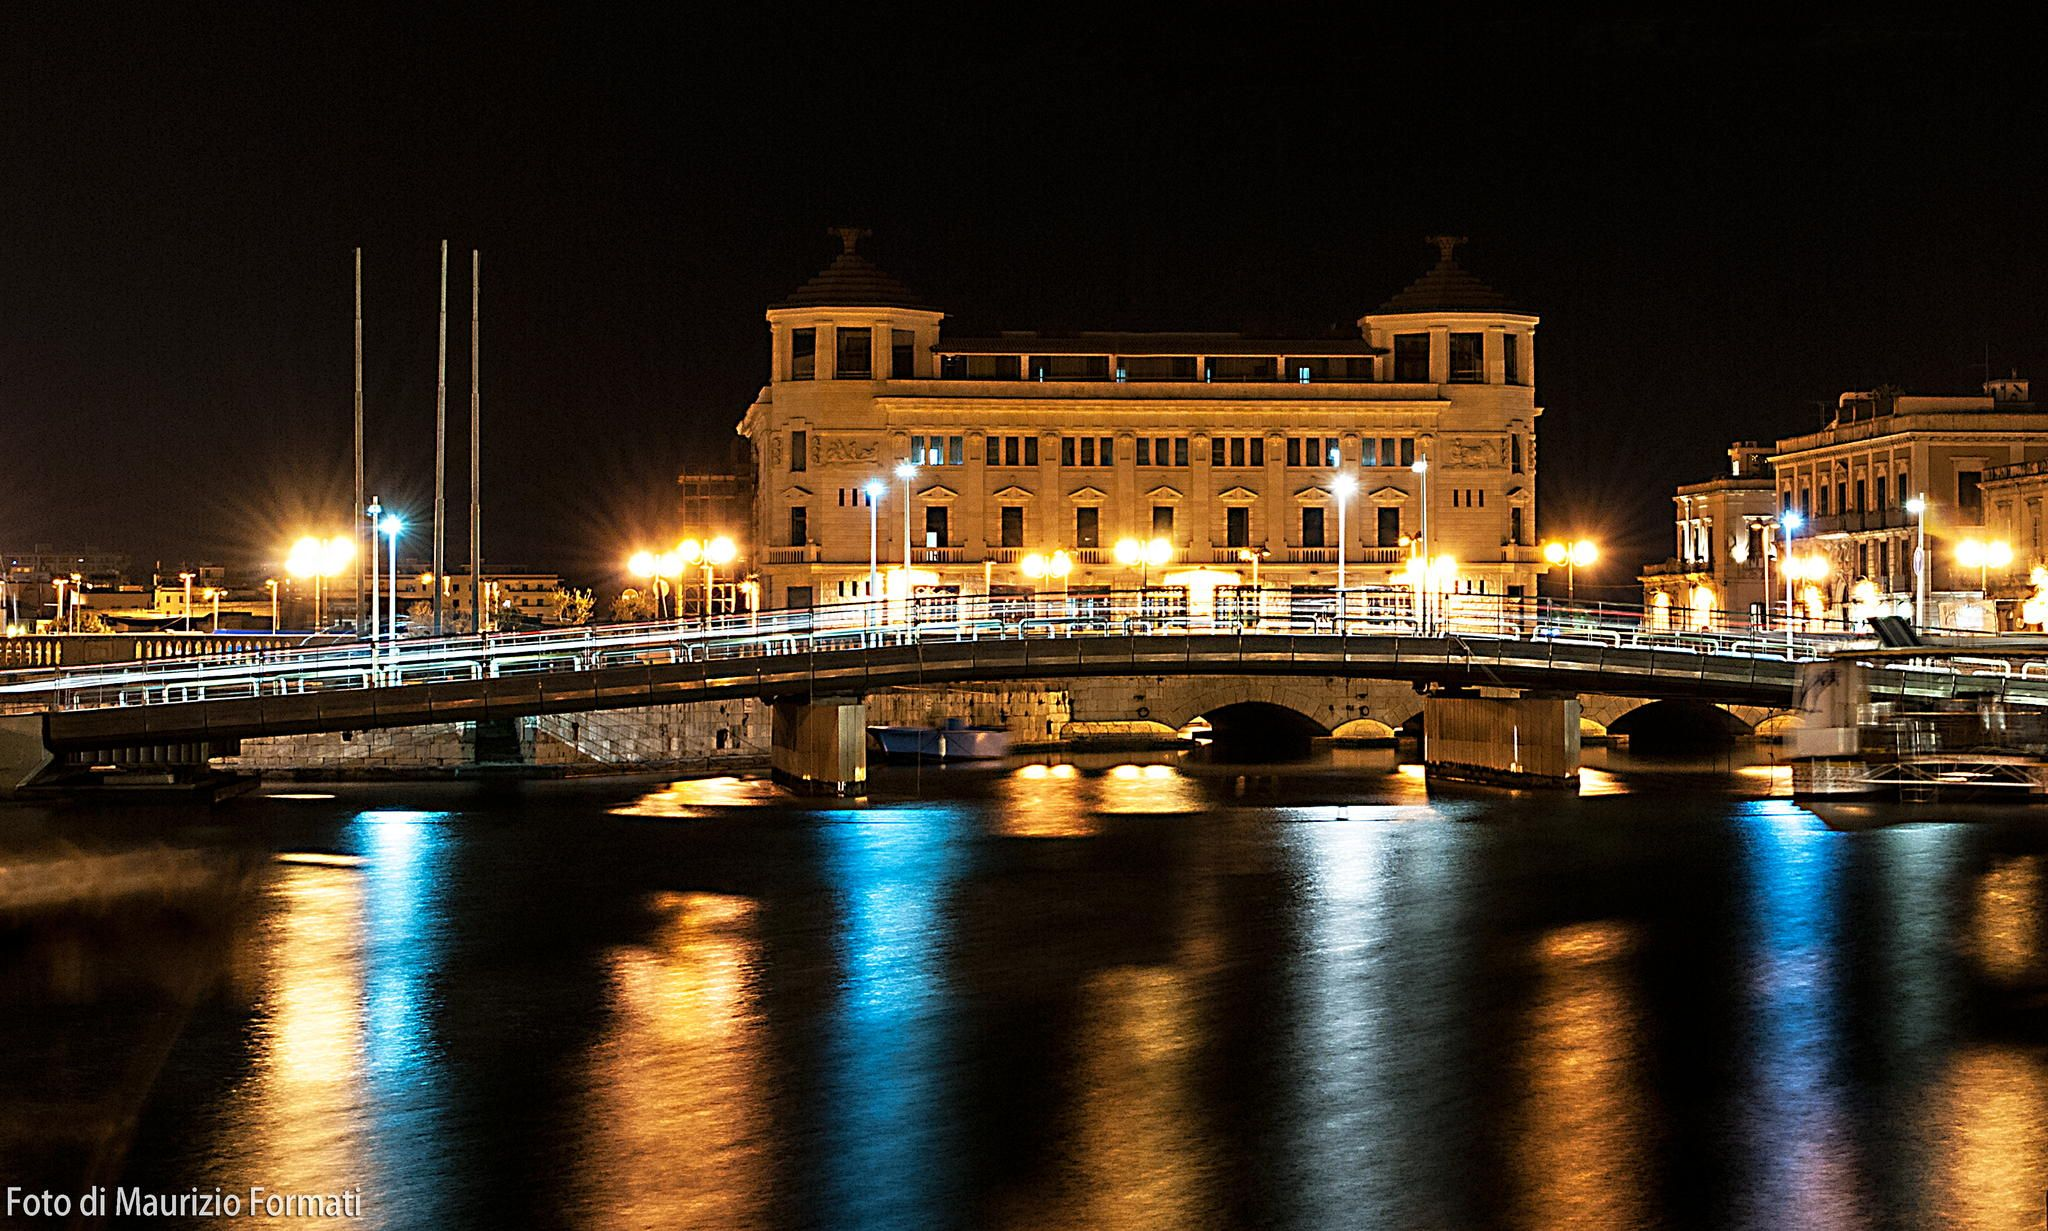 Siracusa - Old Post Office by Maurizio Formati on 500px